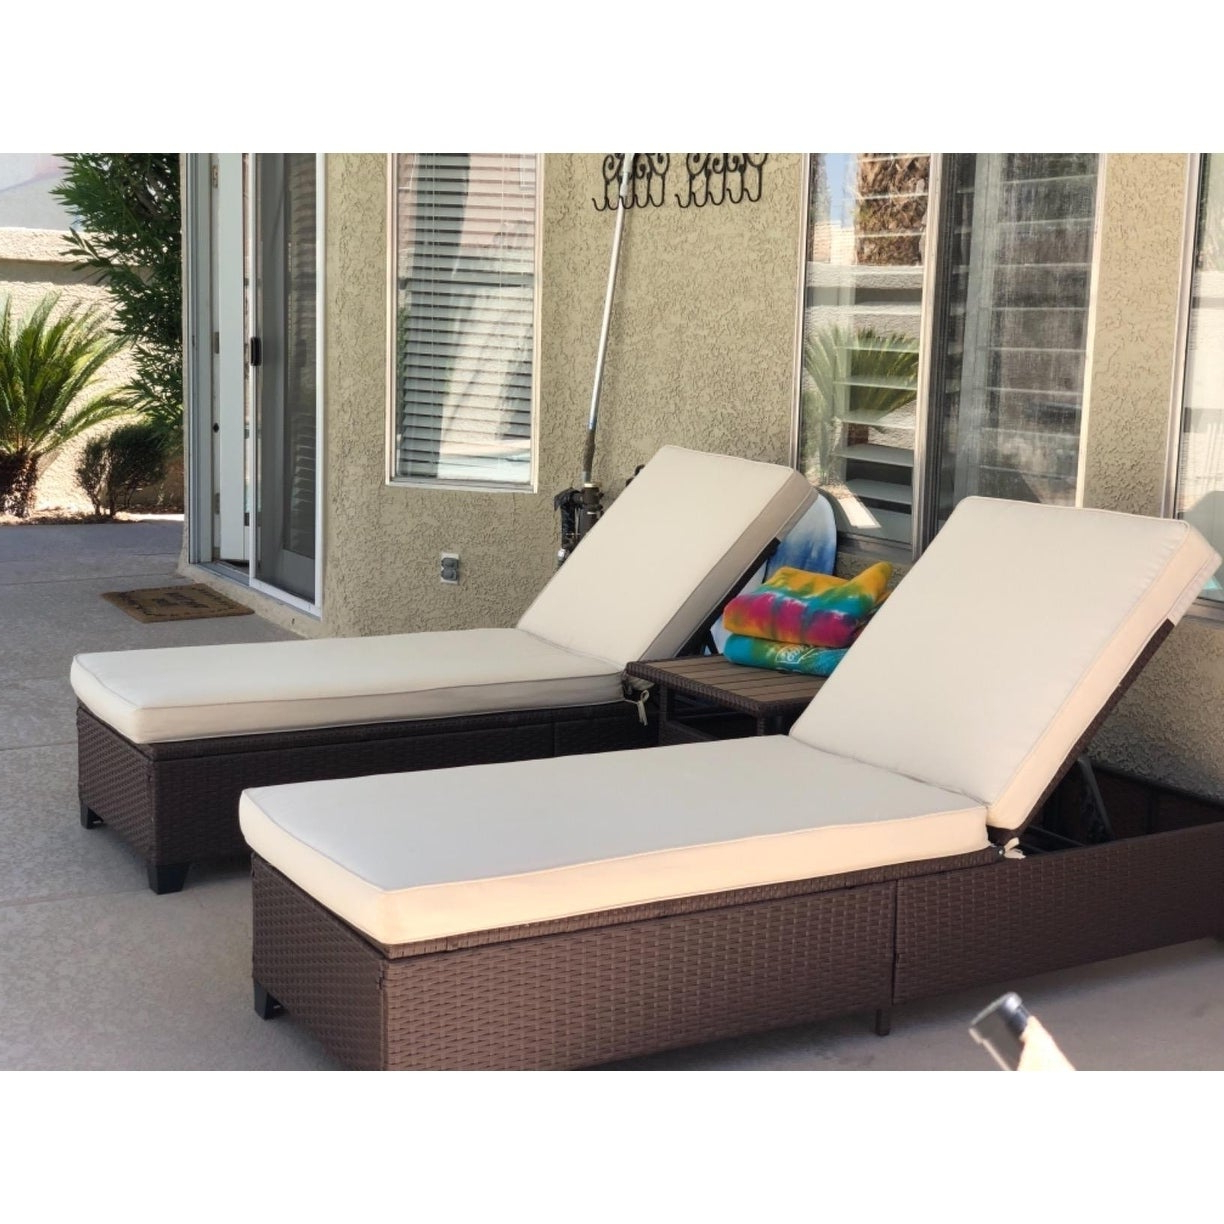 Famous Outdoor Adjustable Rattan Wicker Chaise Pool Chairs With Cushions In 3 Pc Outdoor Rattan Chaise Lounge Chair Patio Pe Wicker Rattan Furniture  Adjustable Garden Pool Lounge Chairs And Table (View 8 of 25)